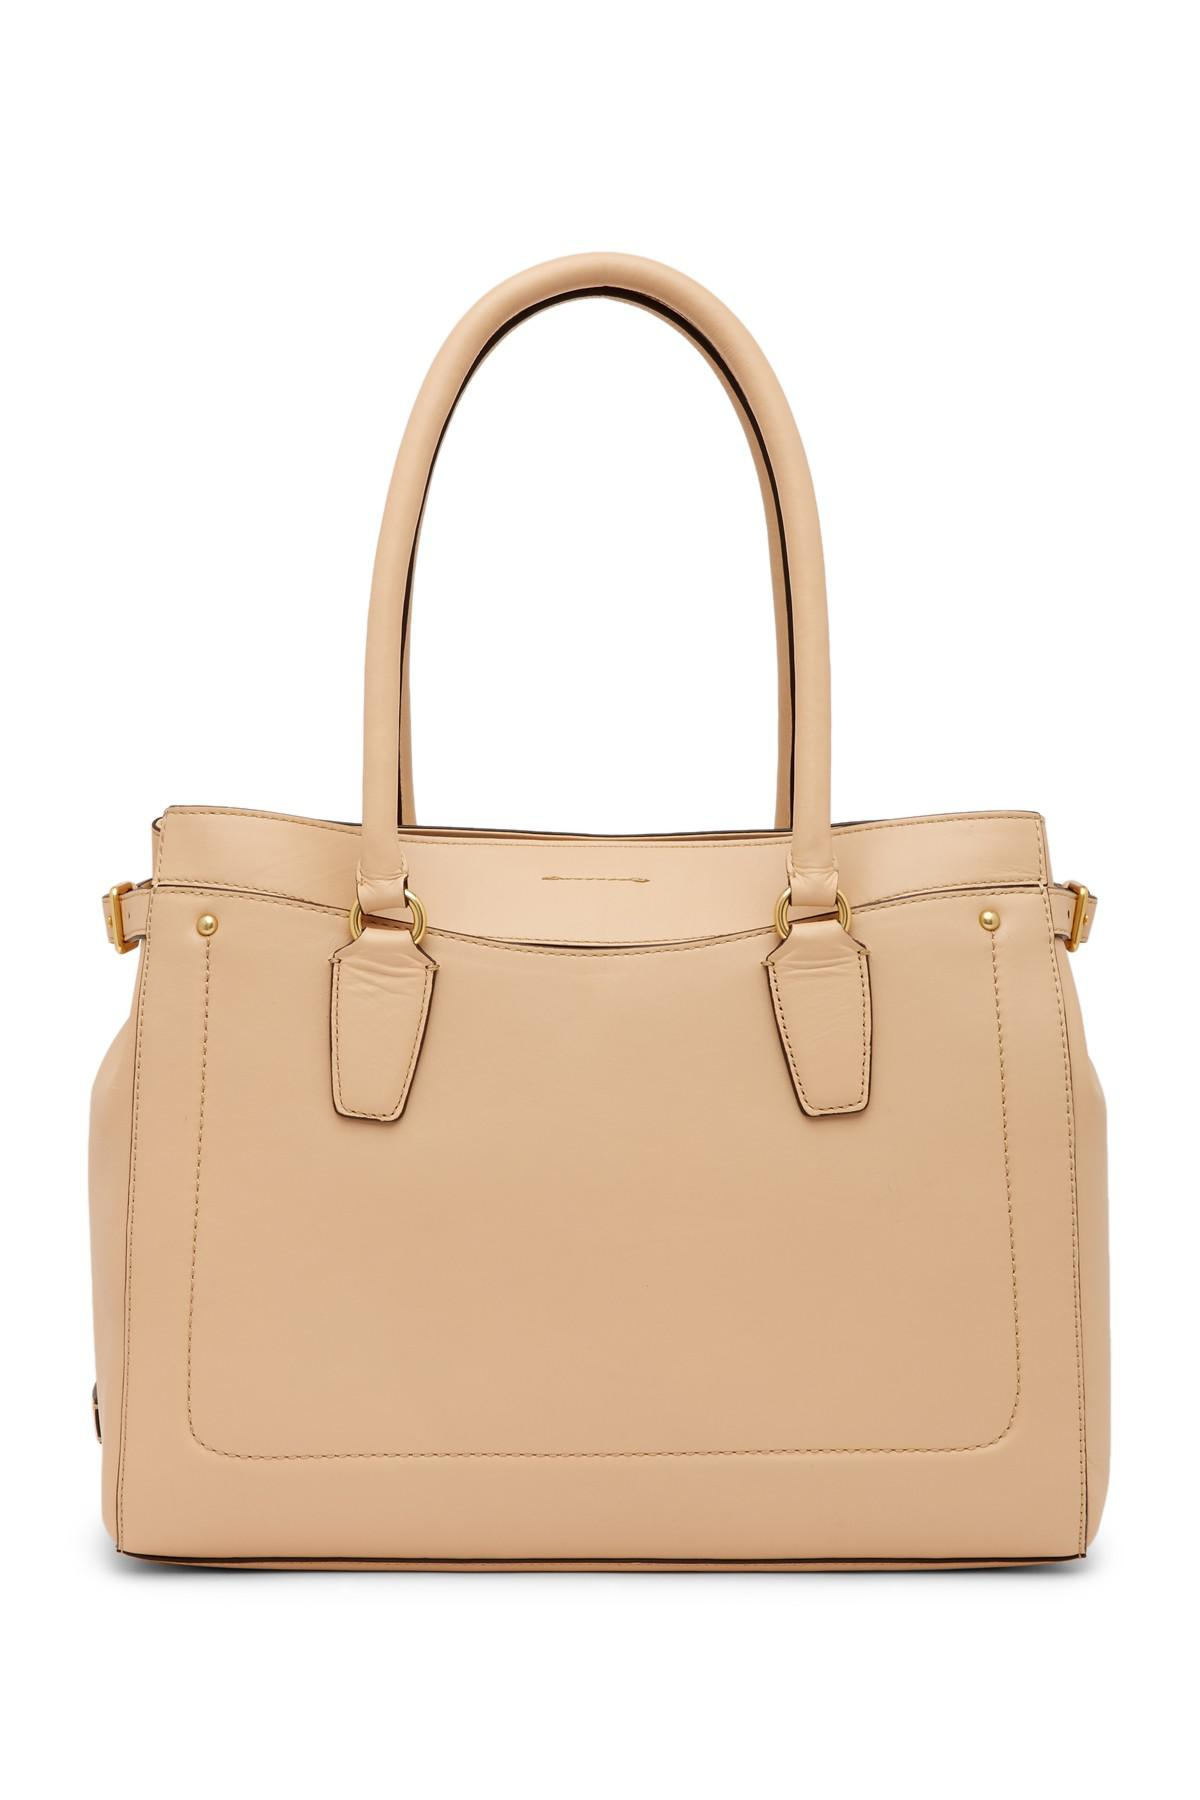 e2b6938fd7e6 Lyst - Cole Haan Esme Leather Work Tote Bag in Natural